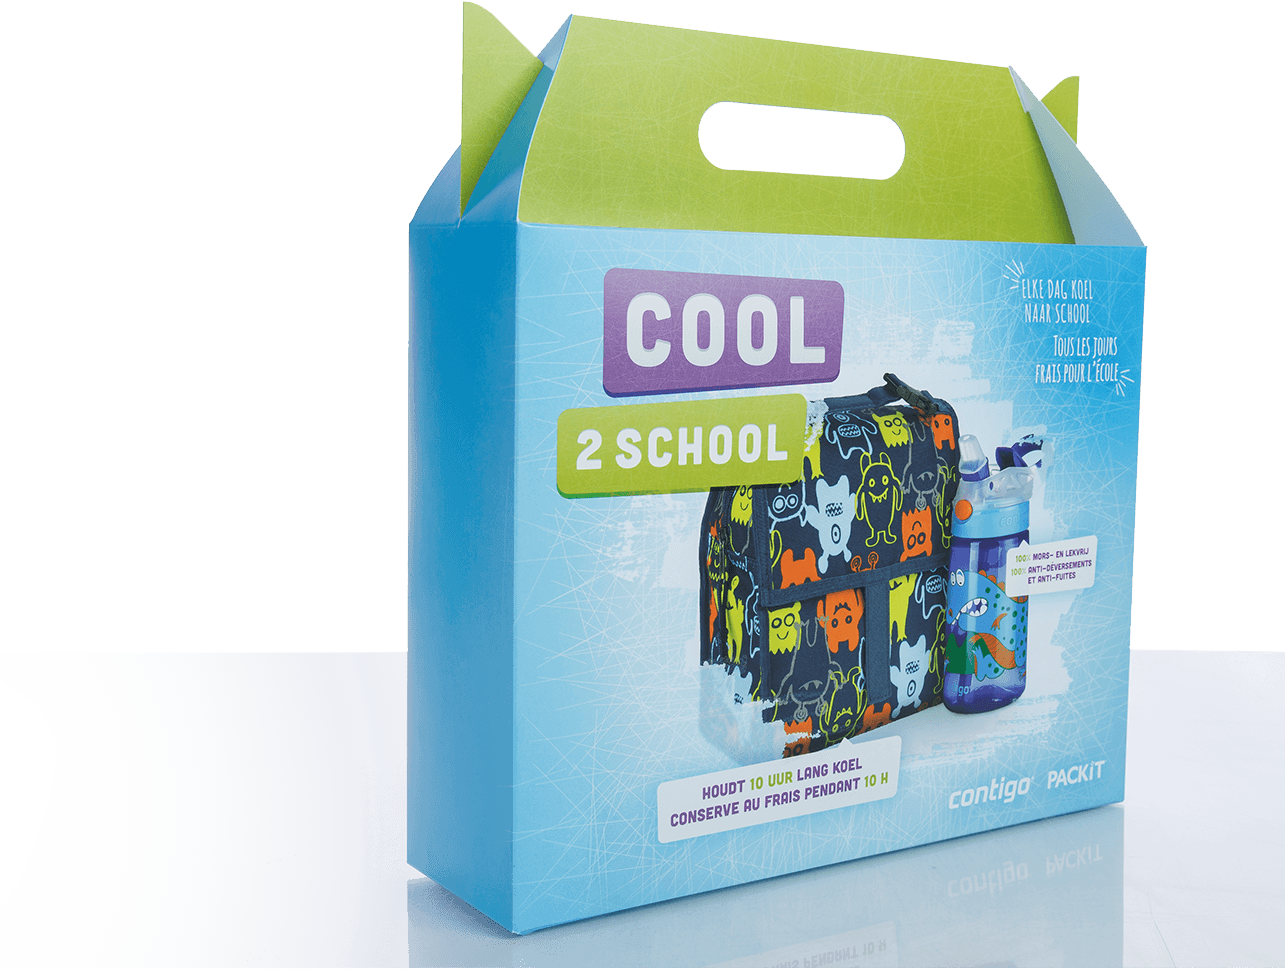 PackIt - Cool 2 School